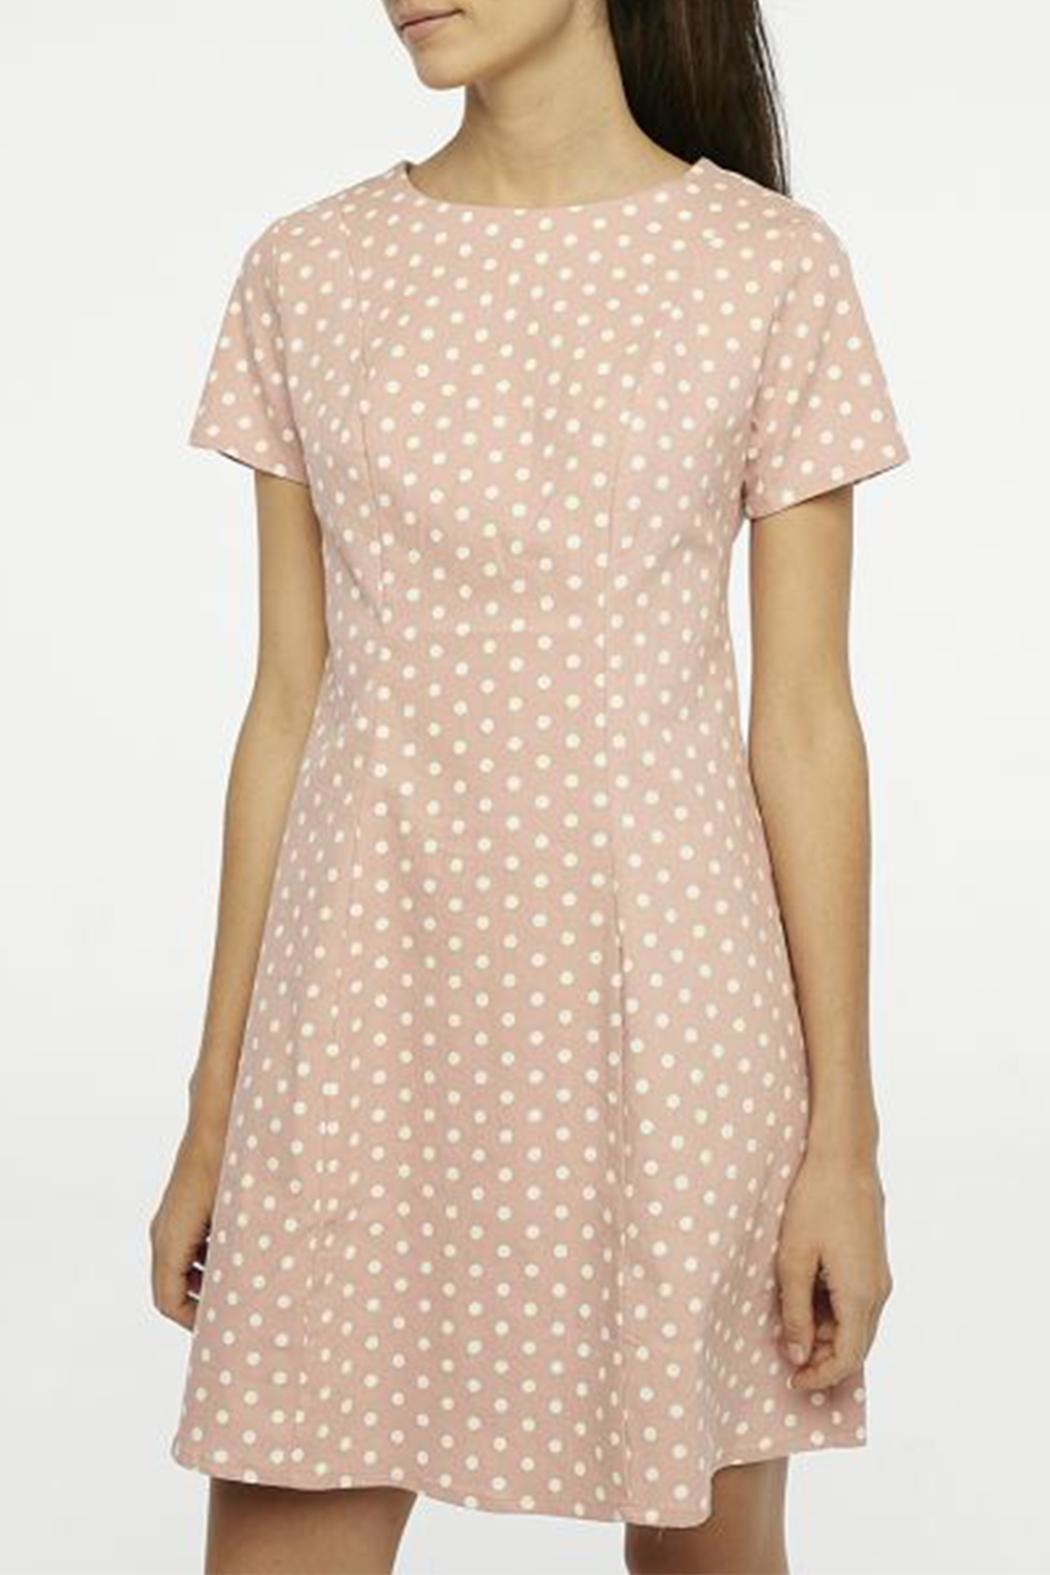 Compania Fantastica Polka Dot Dress - Front Full Image